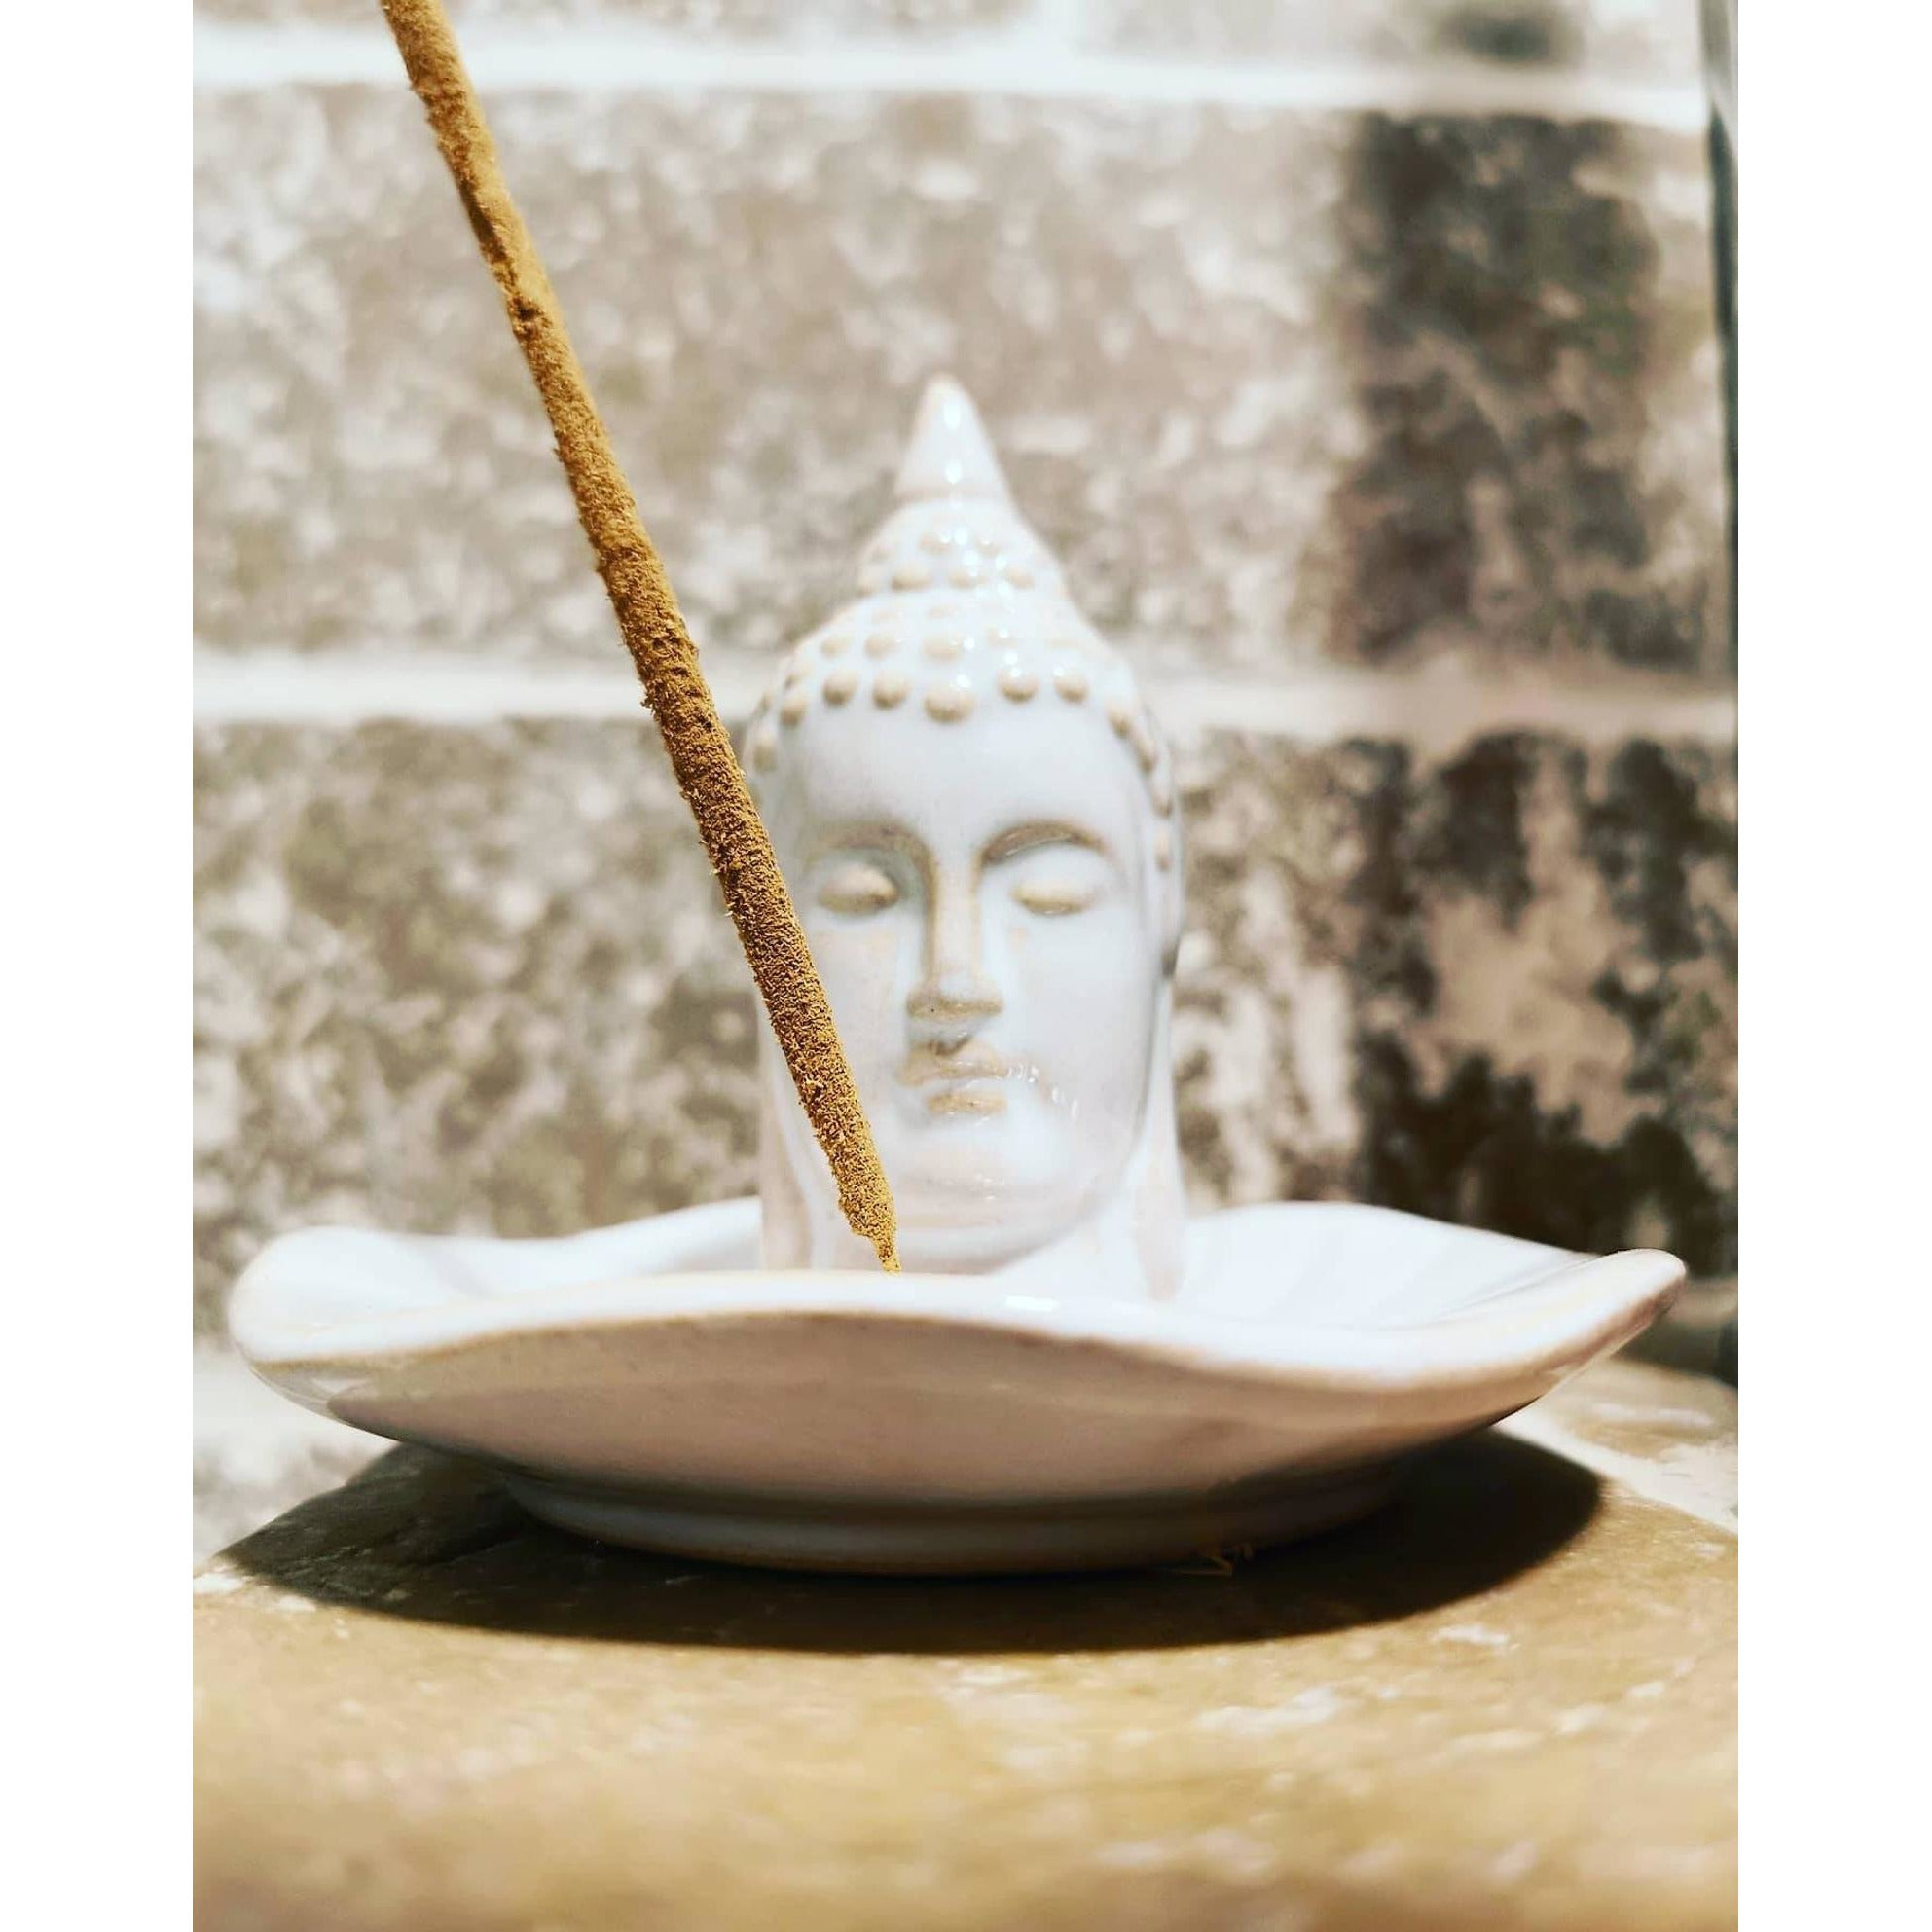 Handmade Ceramic Buddha incense burner with White Sage and Lavender Incense Sticks - natoorio